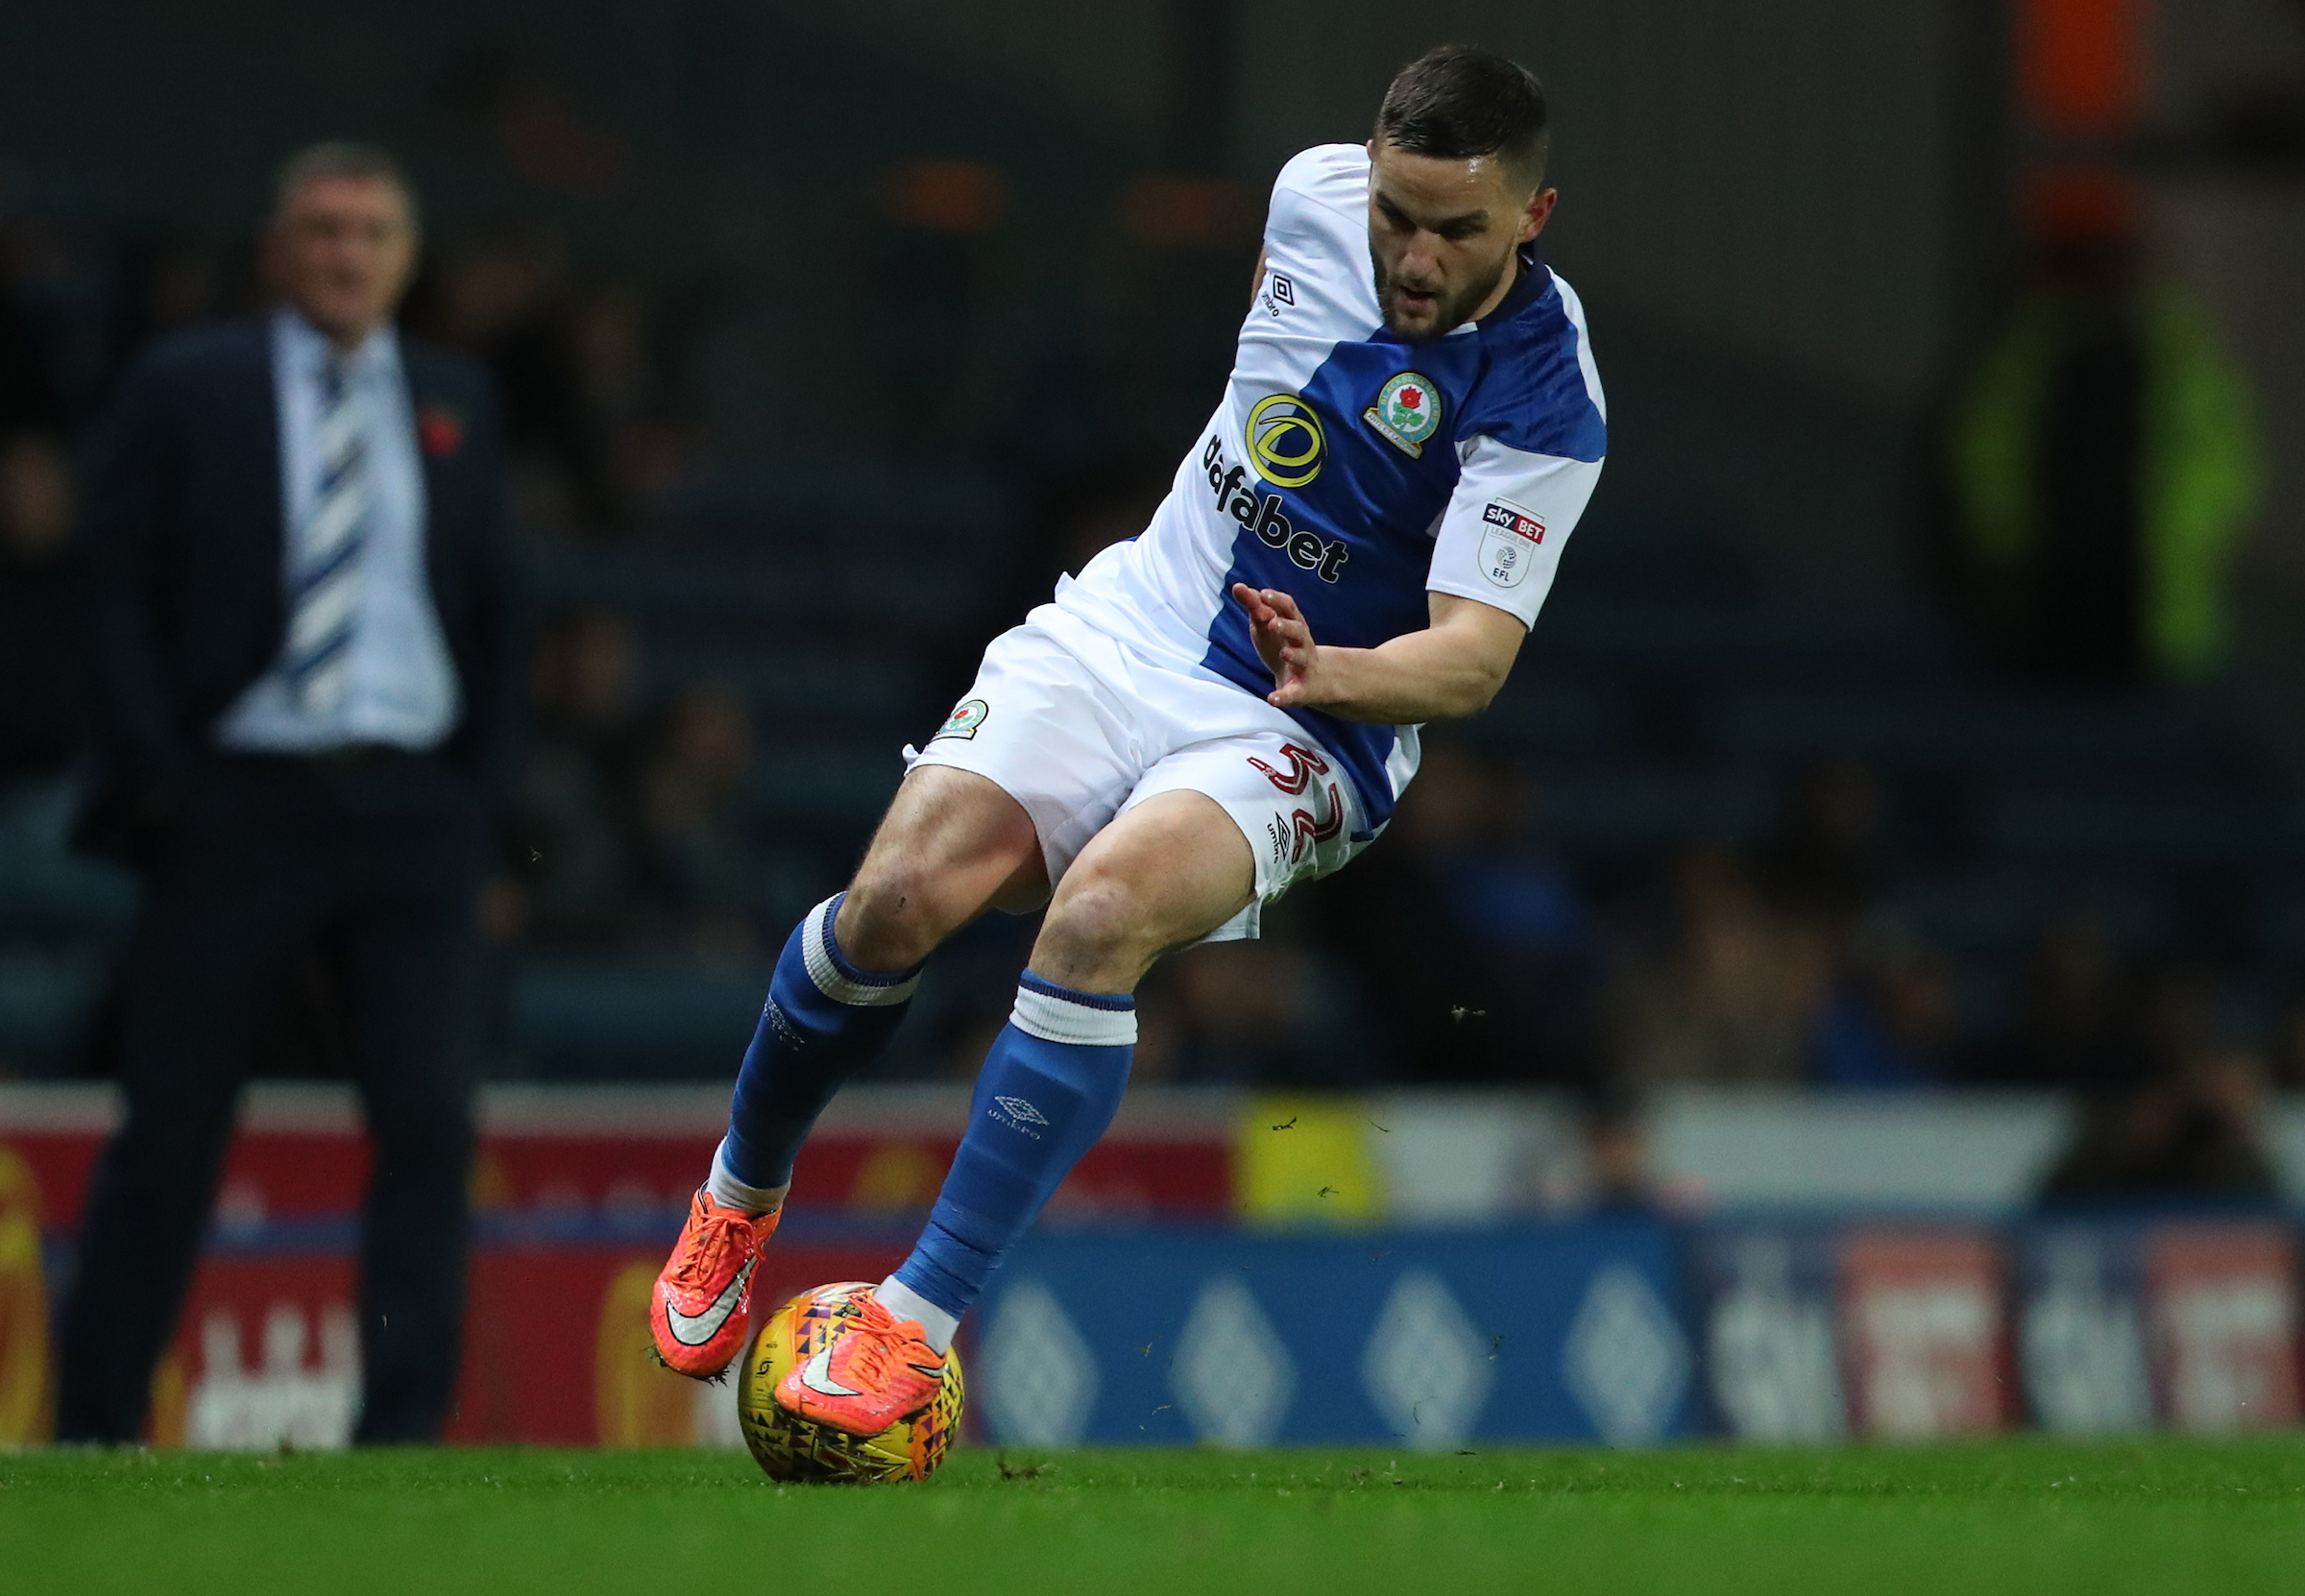 Tony Mowbray hopes for Craig Conway fitness boost ahead of Rovers' trip to Bury